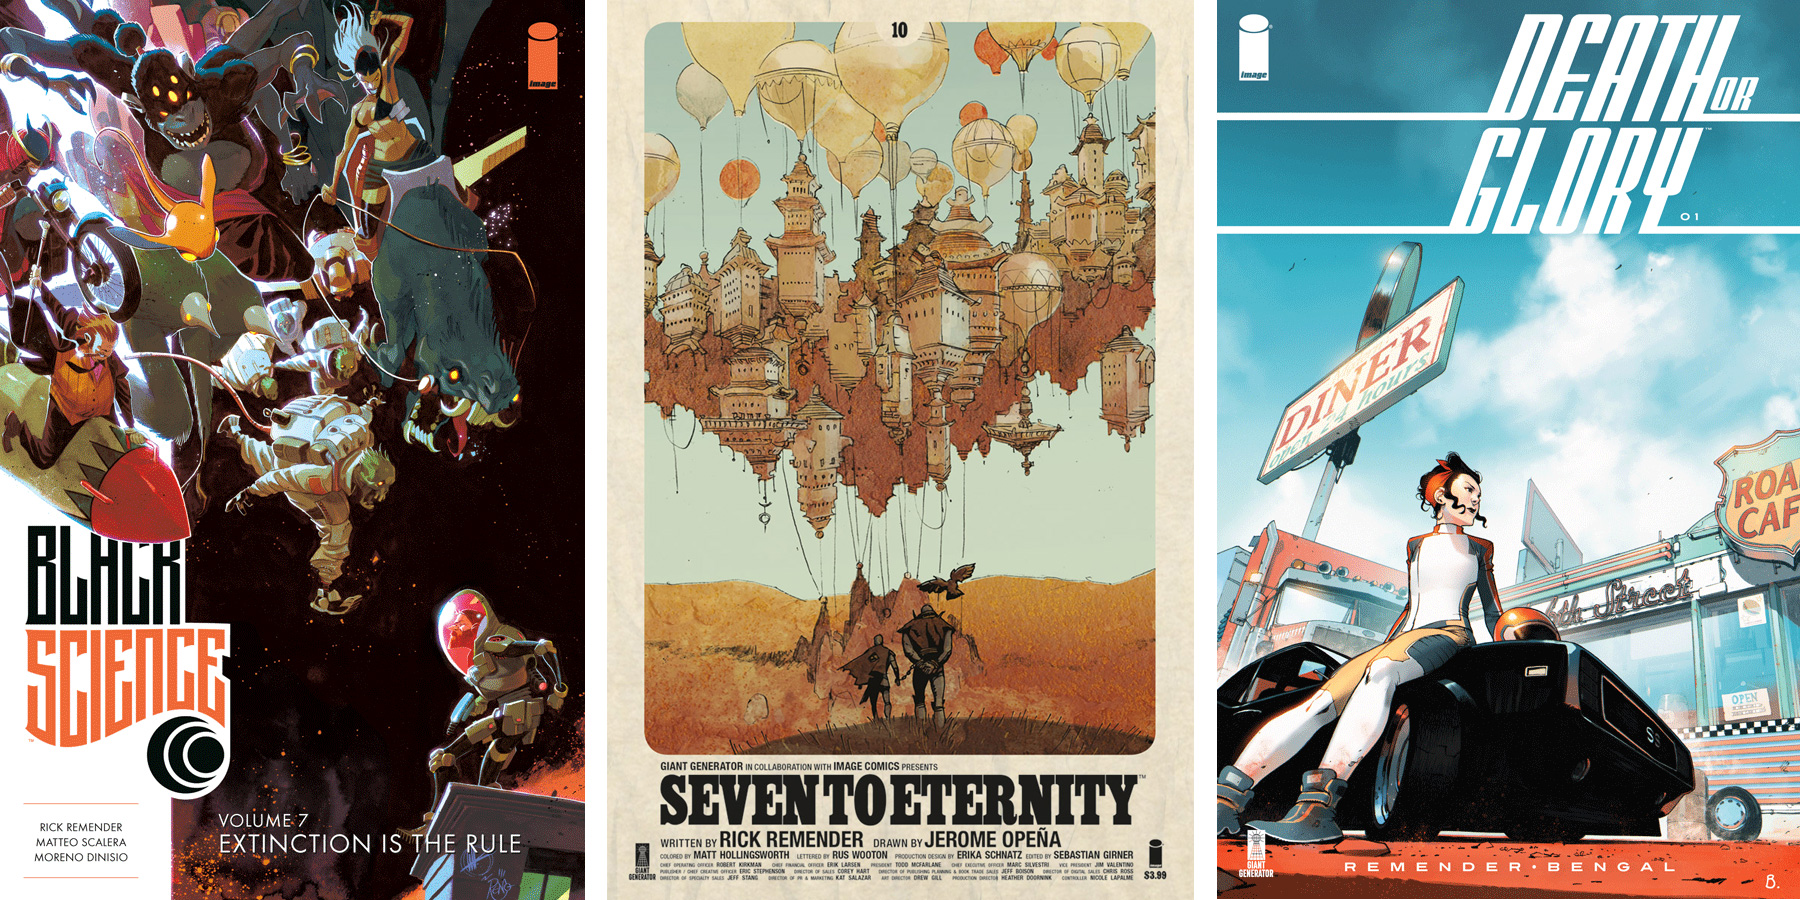 Rick Remender's artistic partners (left to right): Matteo Scalera on  Black Science , Jerome Opeña on  Seven to Eternity , and Bengal on  Death or Glory